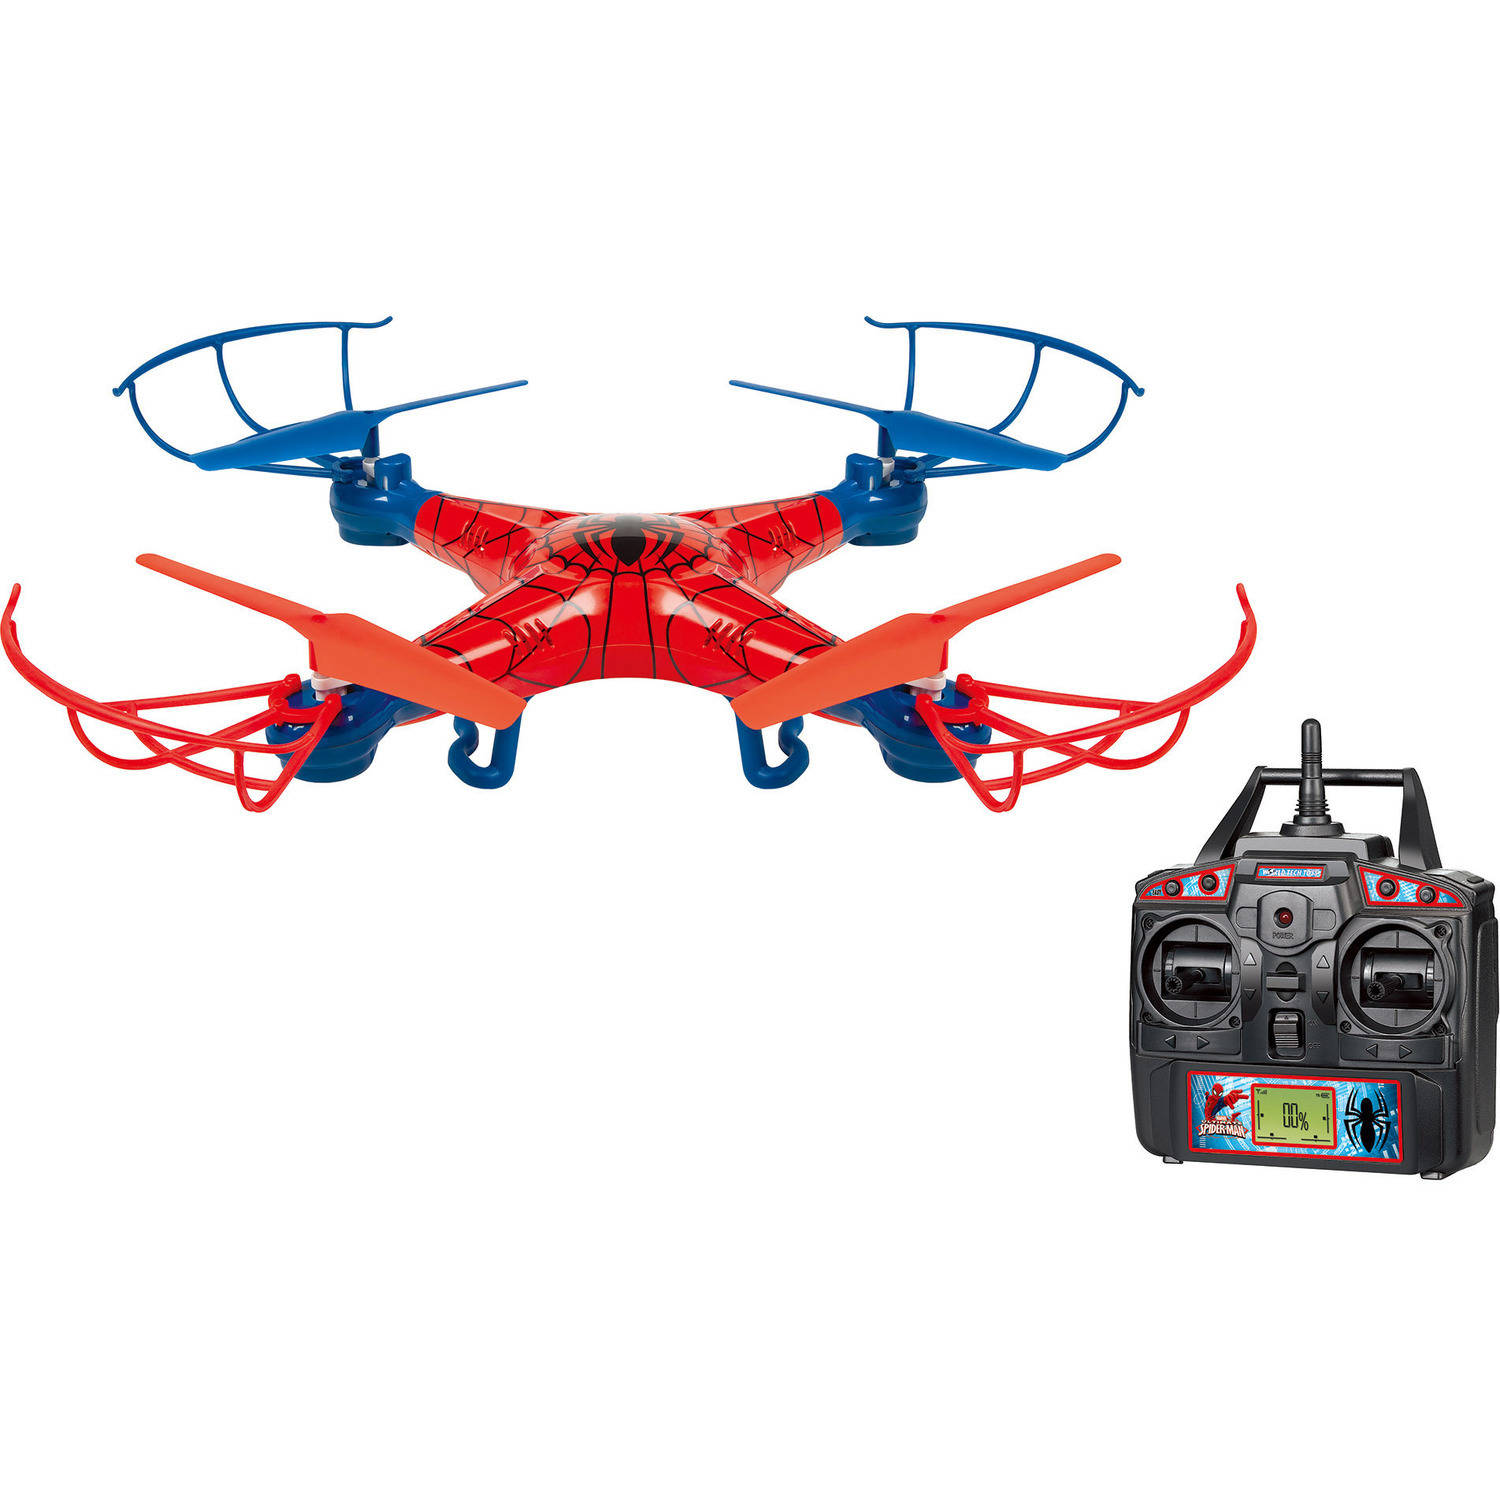 Marvel Spider-Man Sky Hero 2.4GHz 4.5-Channel RC Drone